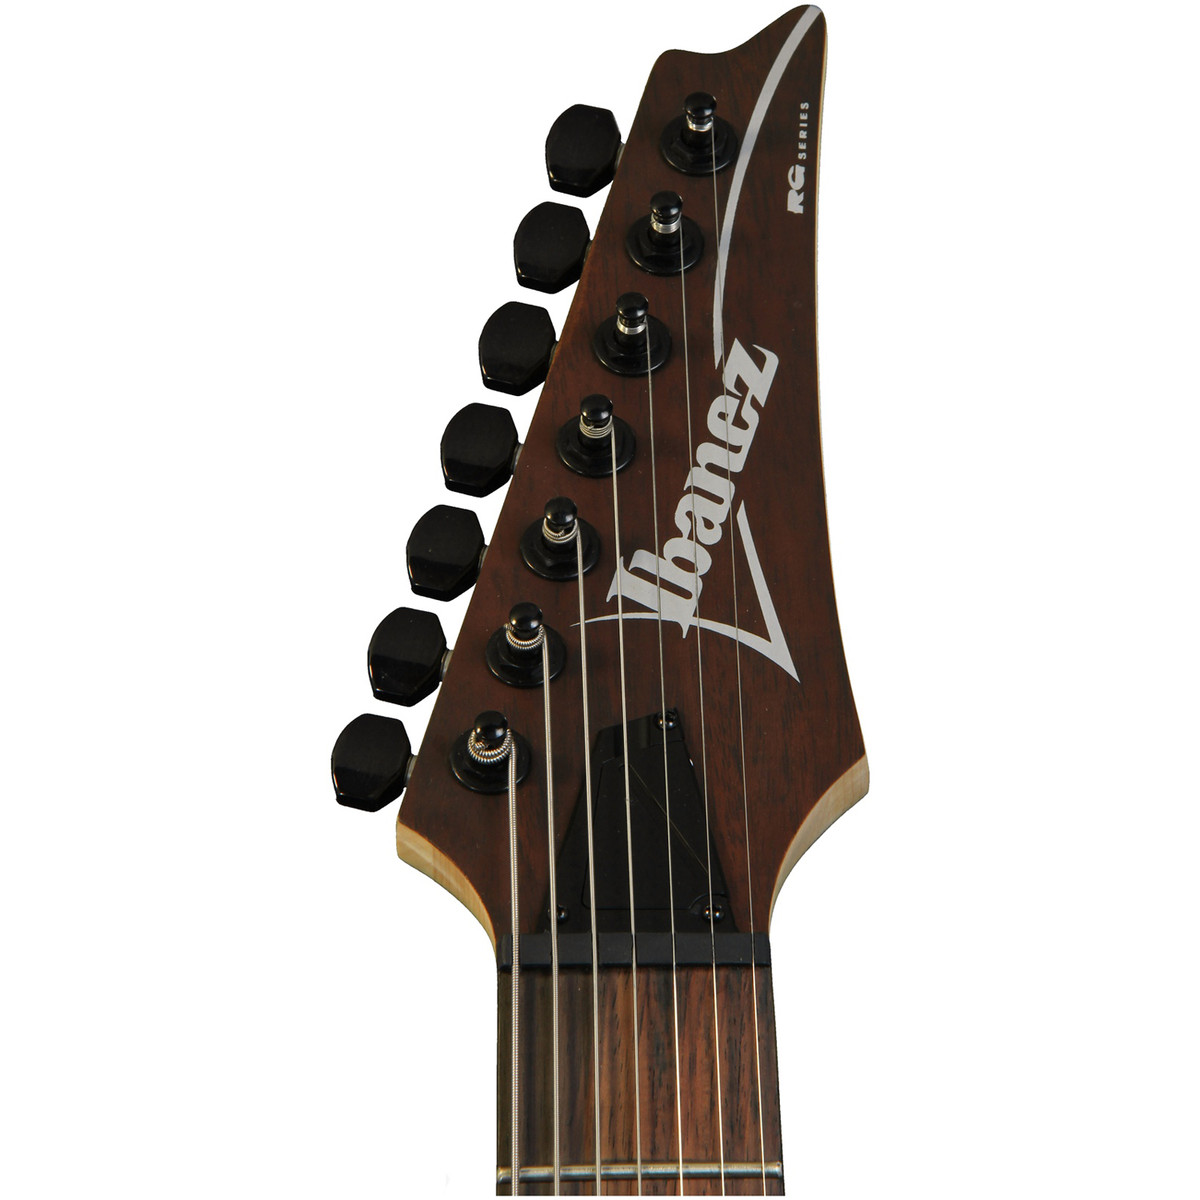 Ibanez 7 String Neck : ibanez 2016 rg7421wnf 7 string electric guitar walnut flat at ~ Vivirlamusica.com Haus und Dekorationen